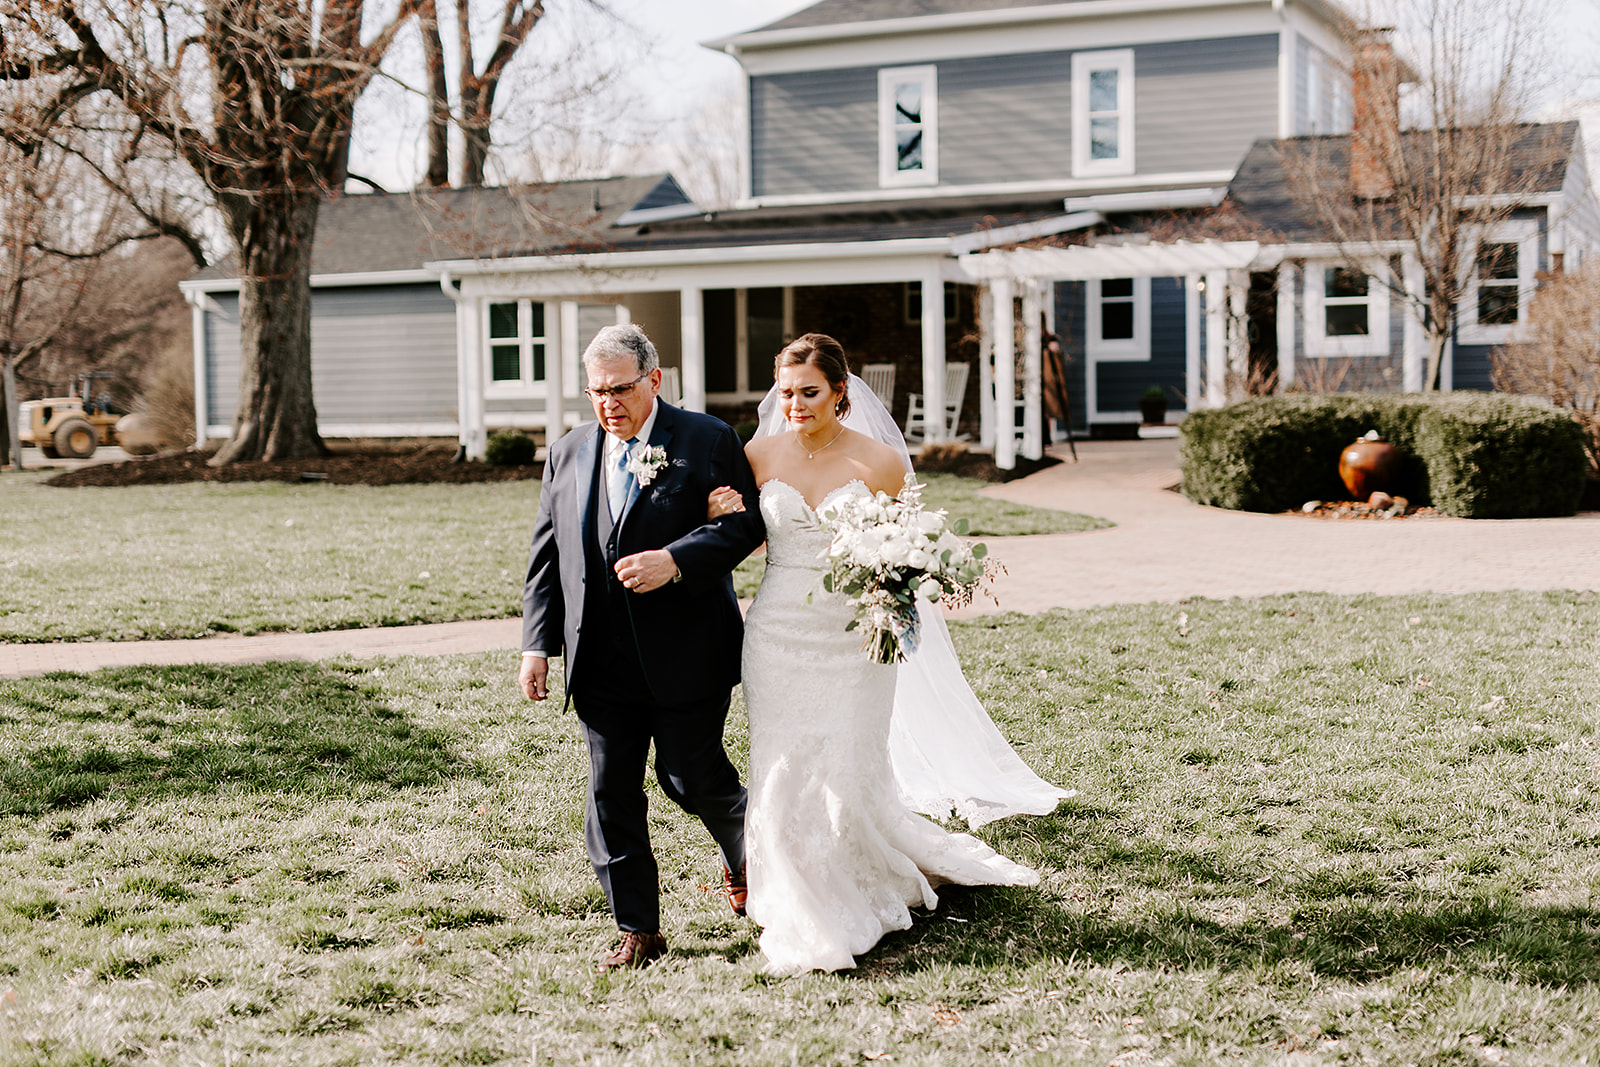 Lauren_and_Andrew_Mustard_Seed_Gardens_Noblesville_Indiana_by_Emily_Wehner_Photography-502.jpg